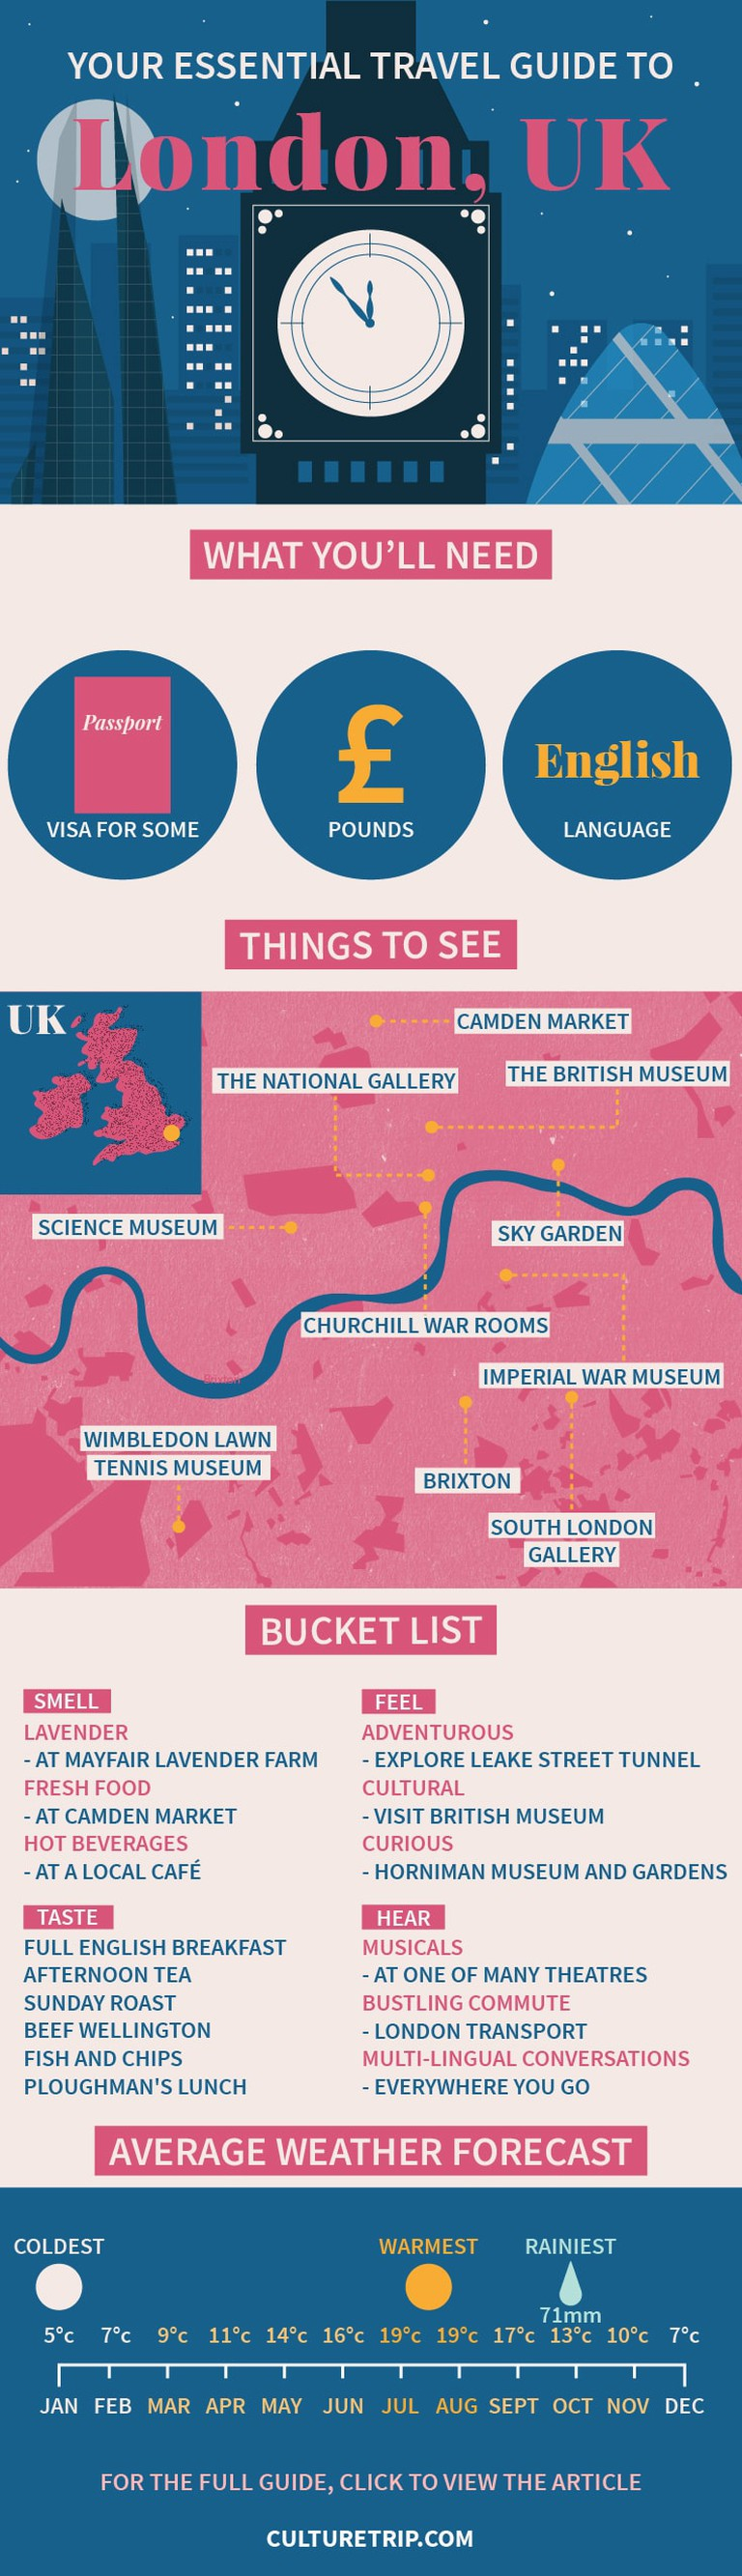 A travel guide for planning your trip to London, England.